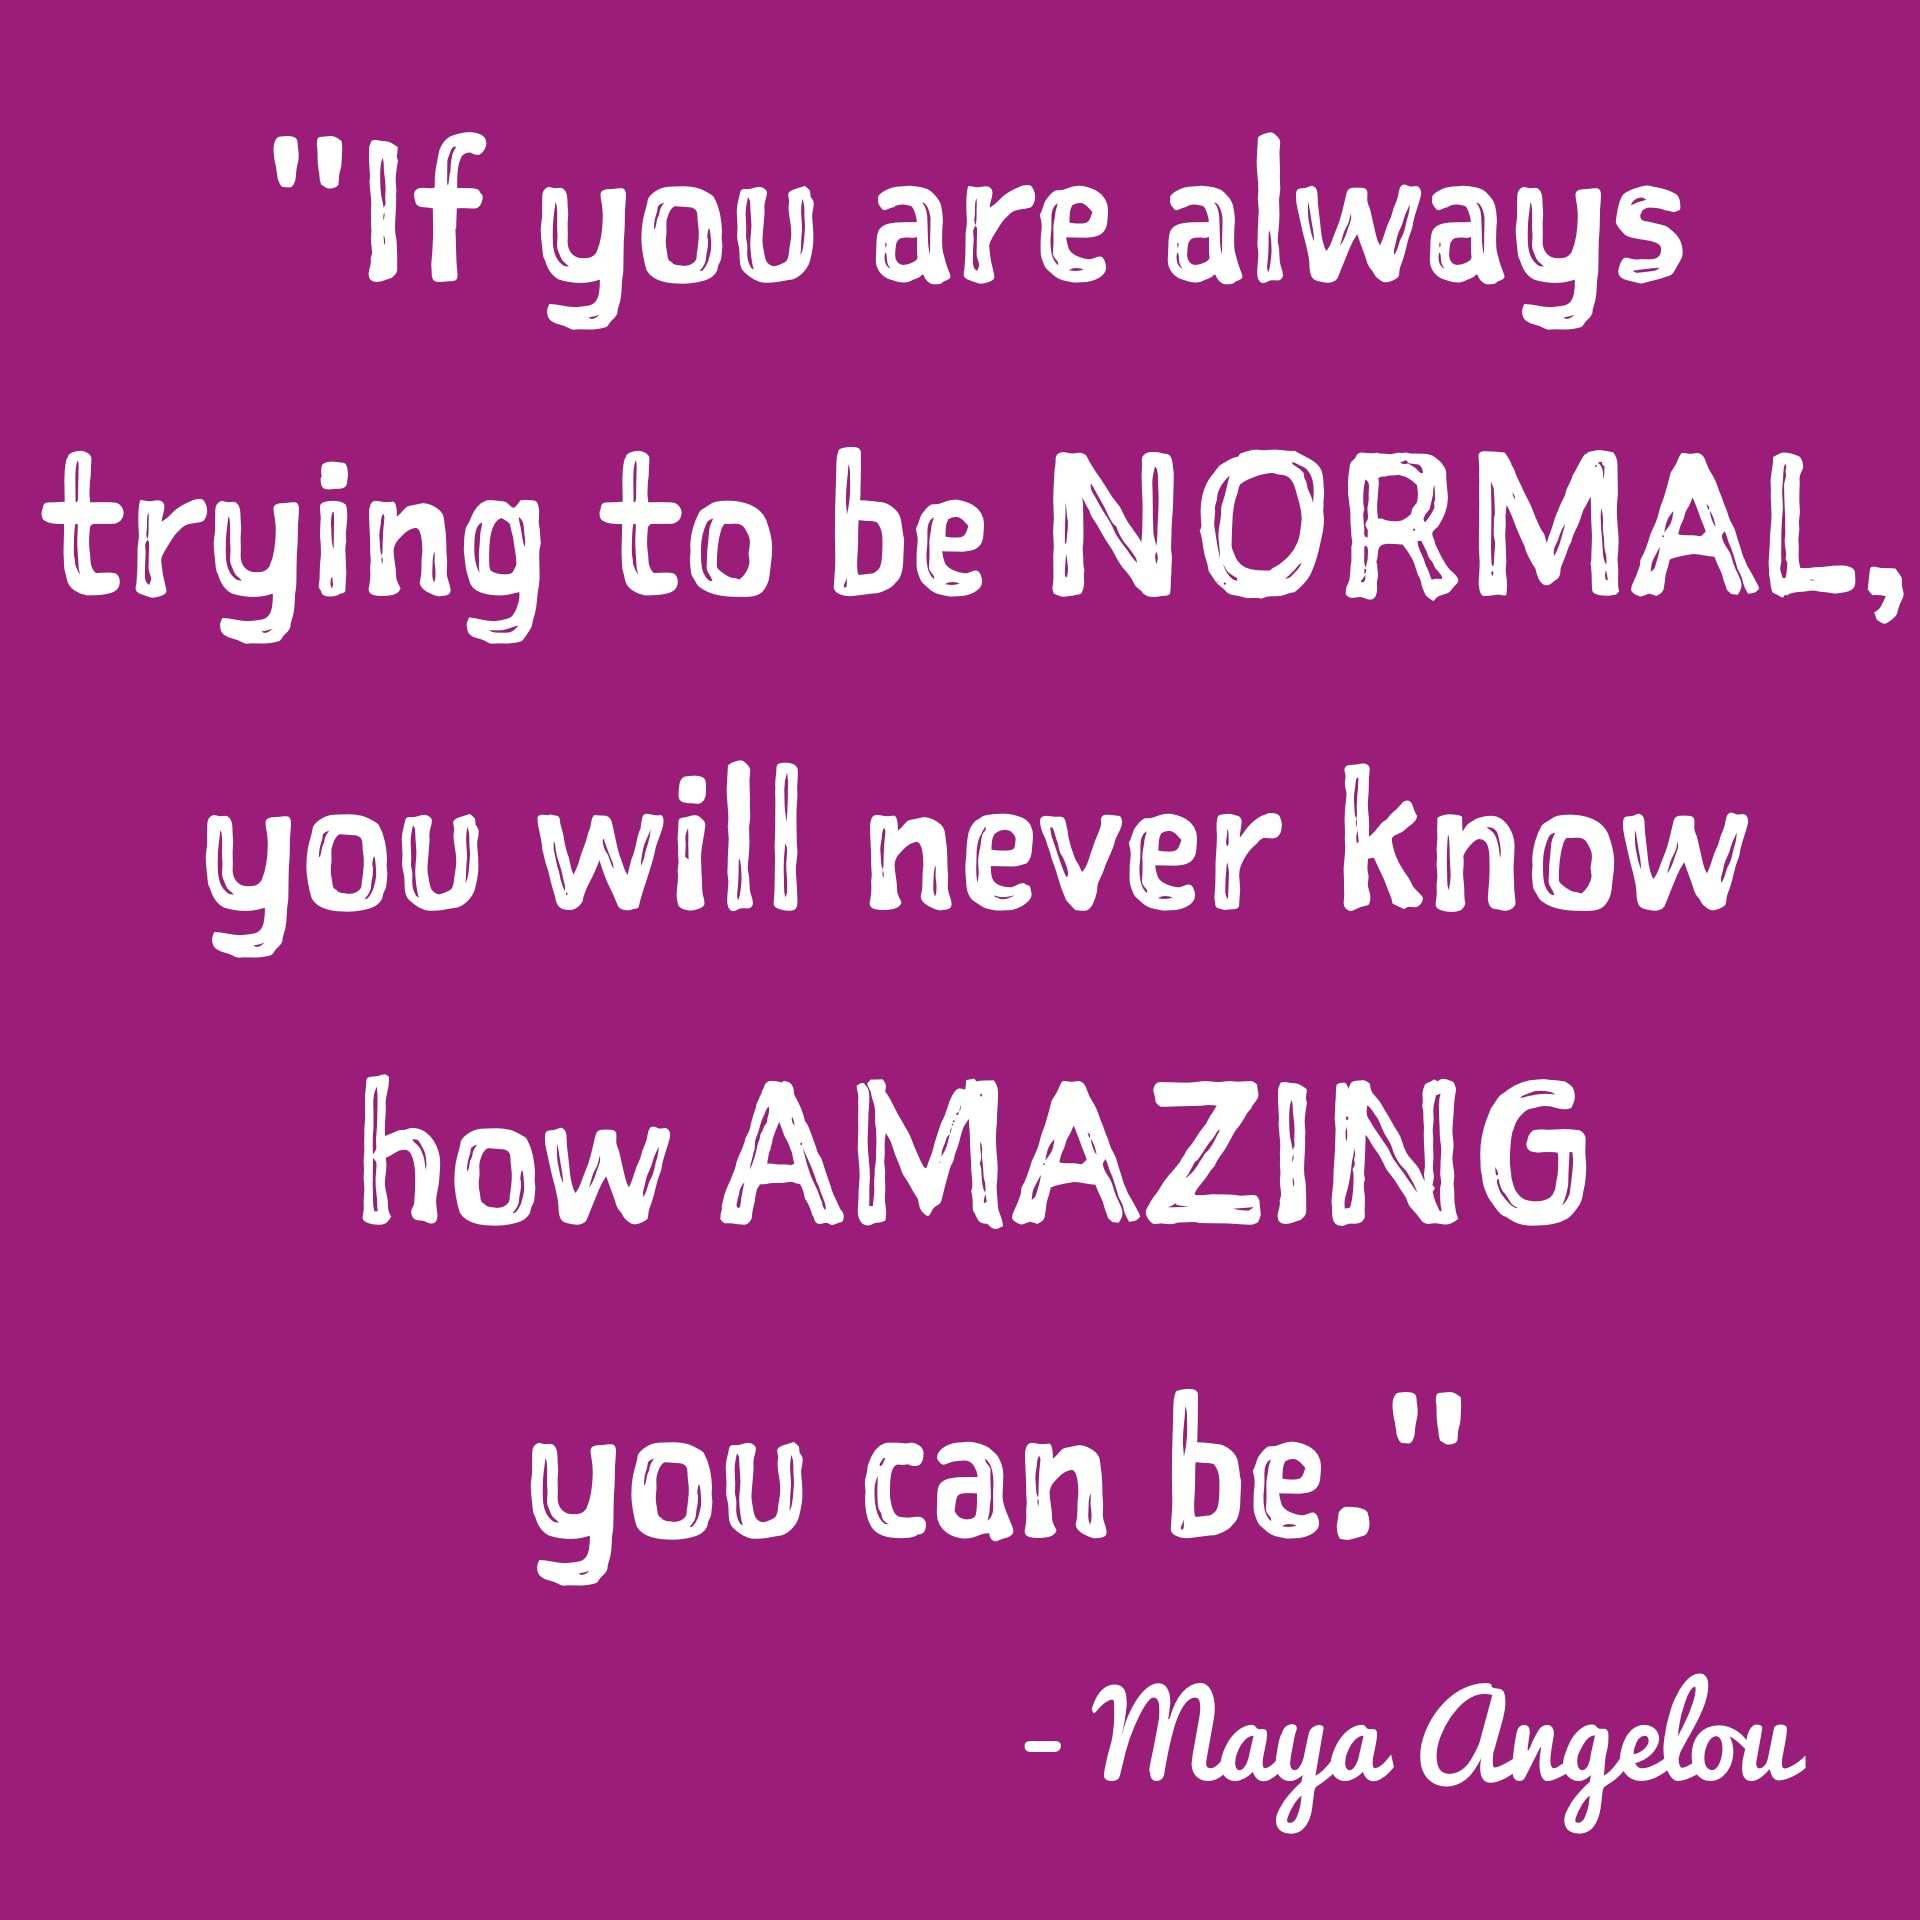 Maya-Angelou-wonderful-quote-about-being-your-unique-self-instead-of-trying-to-be-like-everyone-else-sayings-about-being-amazing-or-trying-to-be-normal.